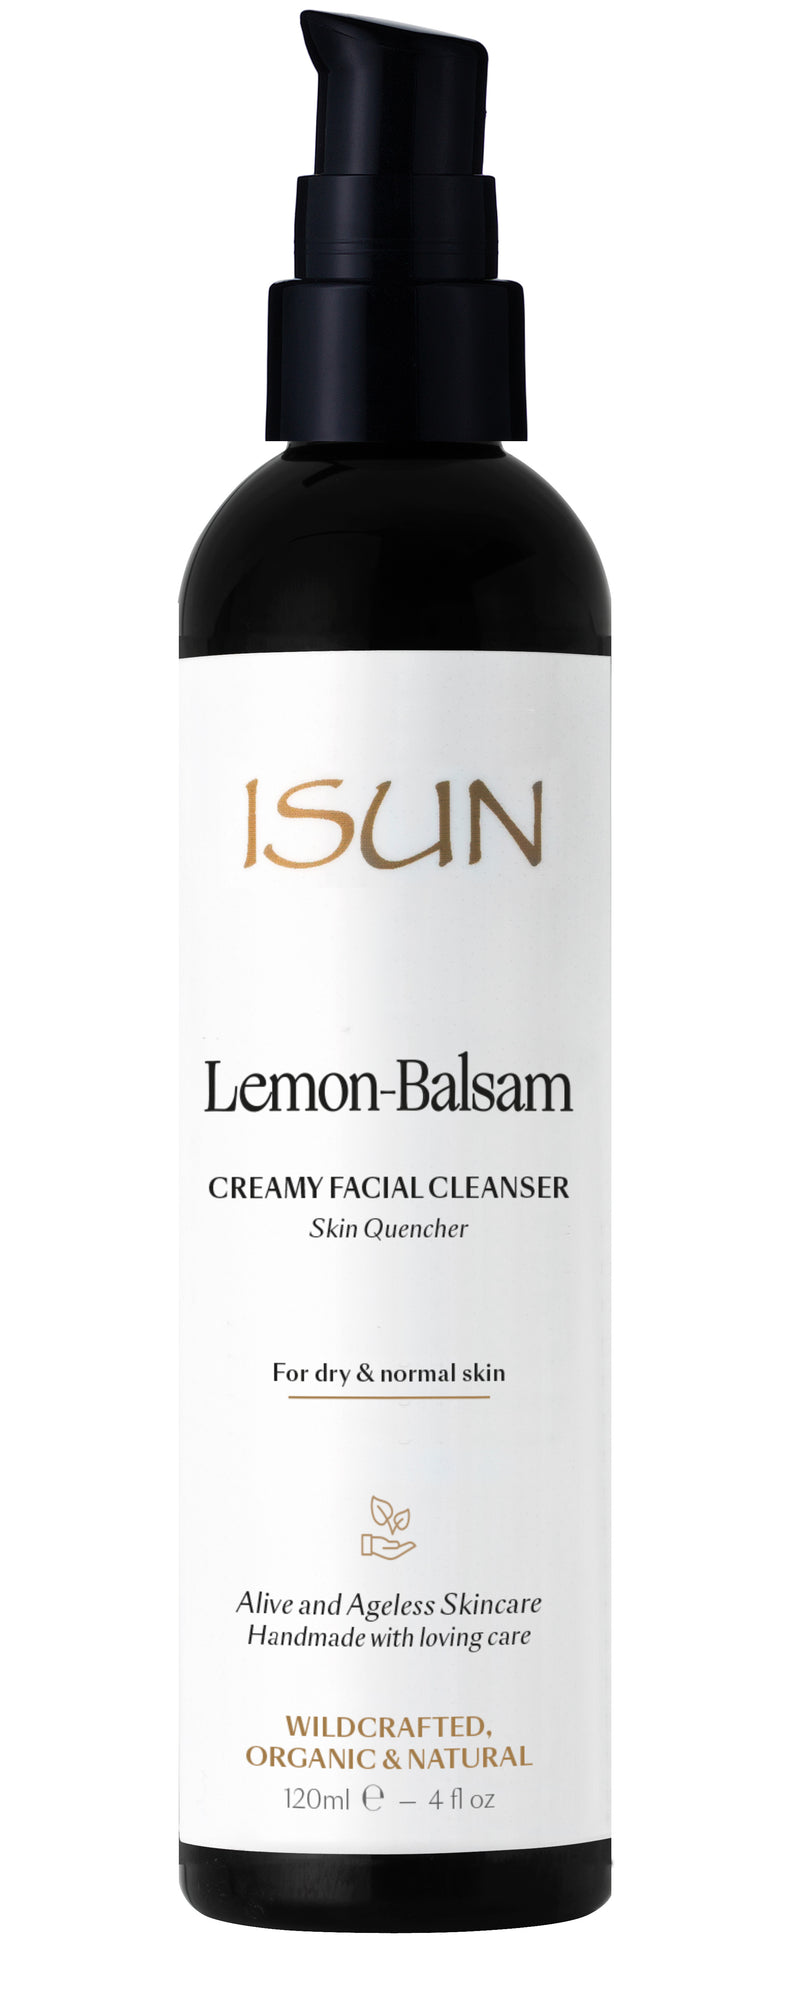 Lemon Balsam Creamy Facial Cleanser